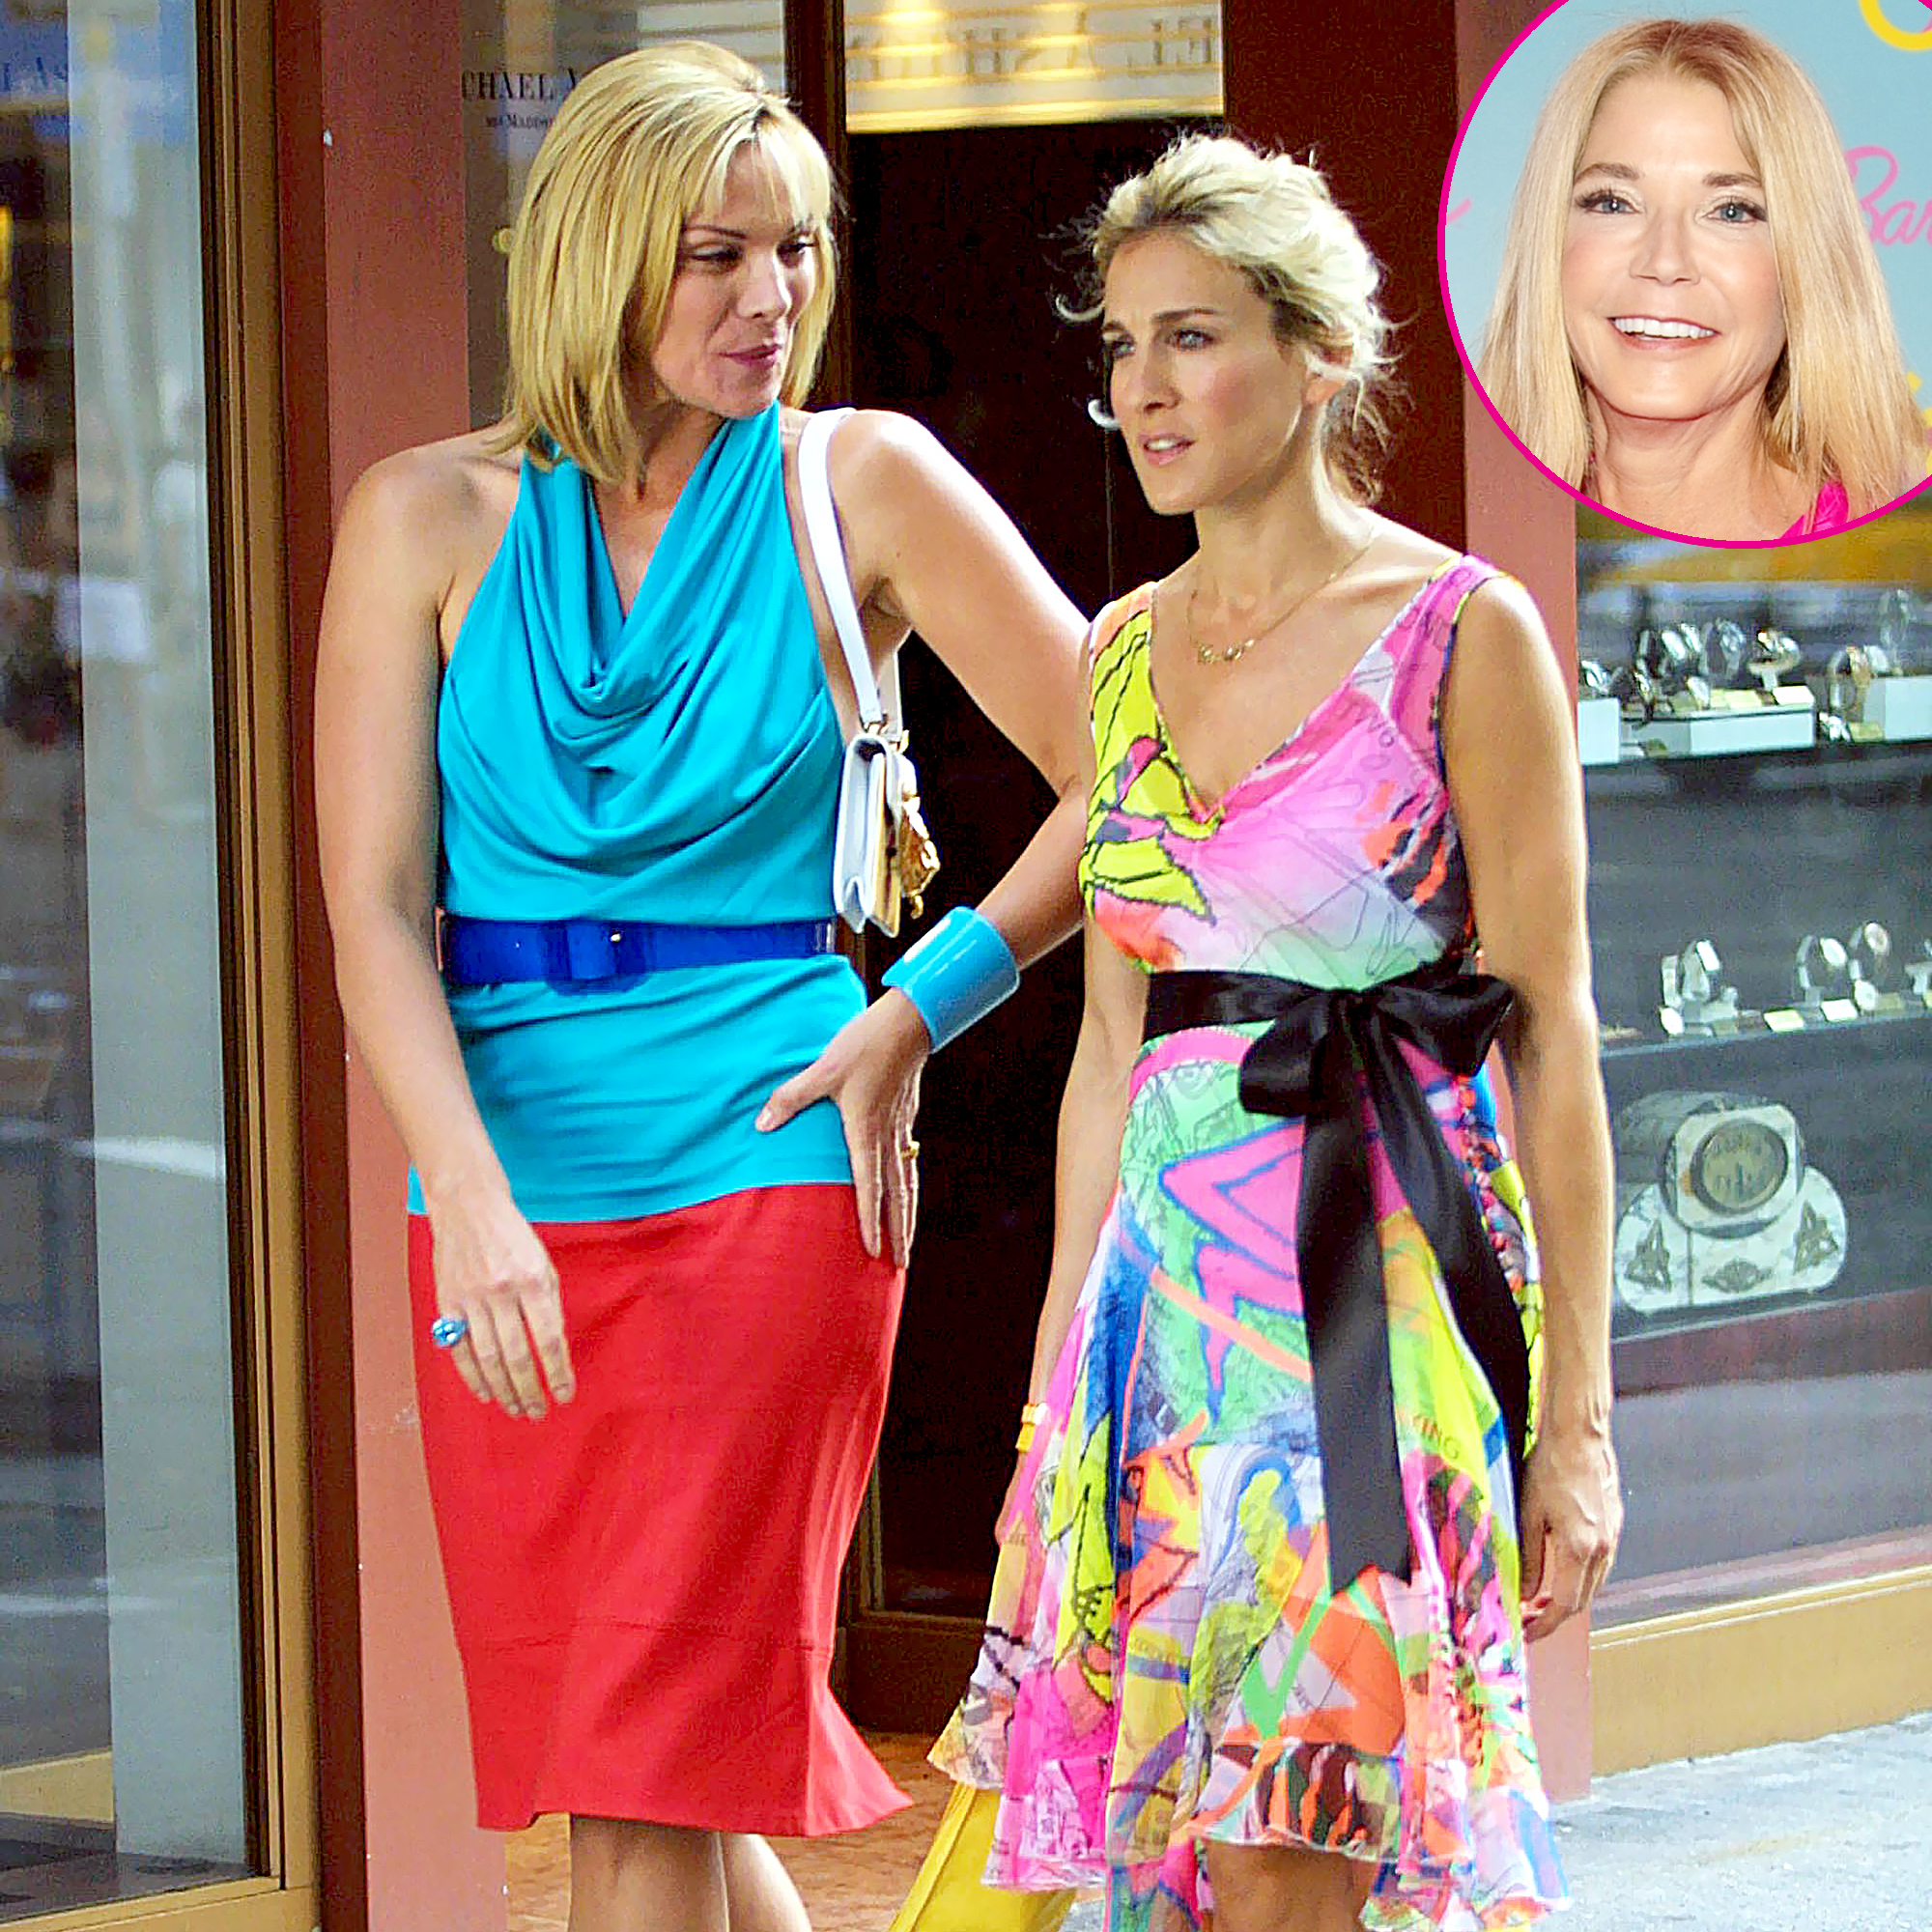 Candace-Bushnell-Insists-There-Was-'No-Feud'-Between-Sarah-Jessica-Parker-and-Kim-Catrall-2